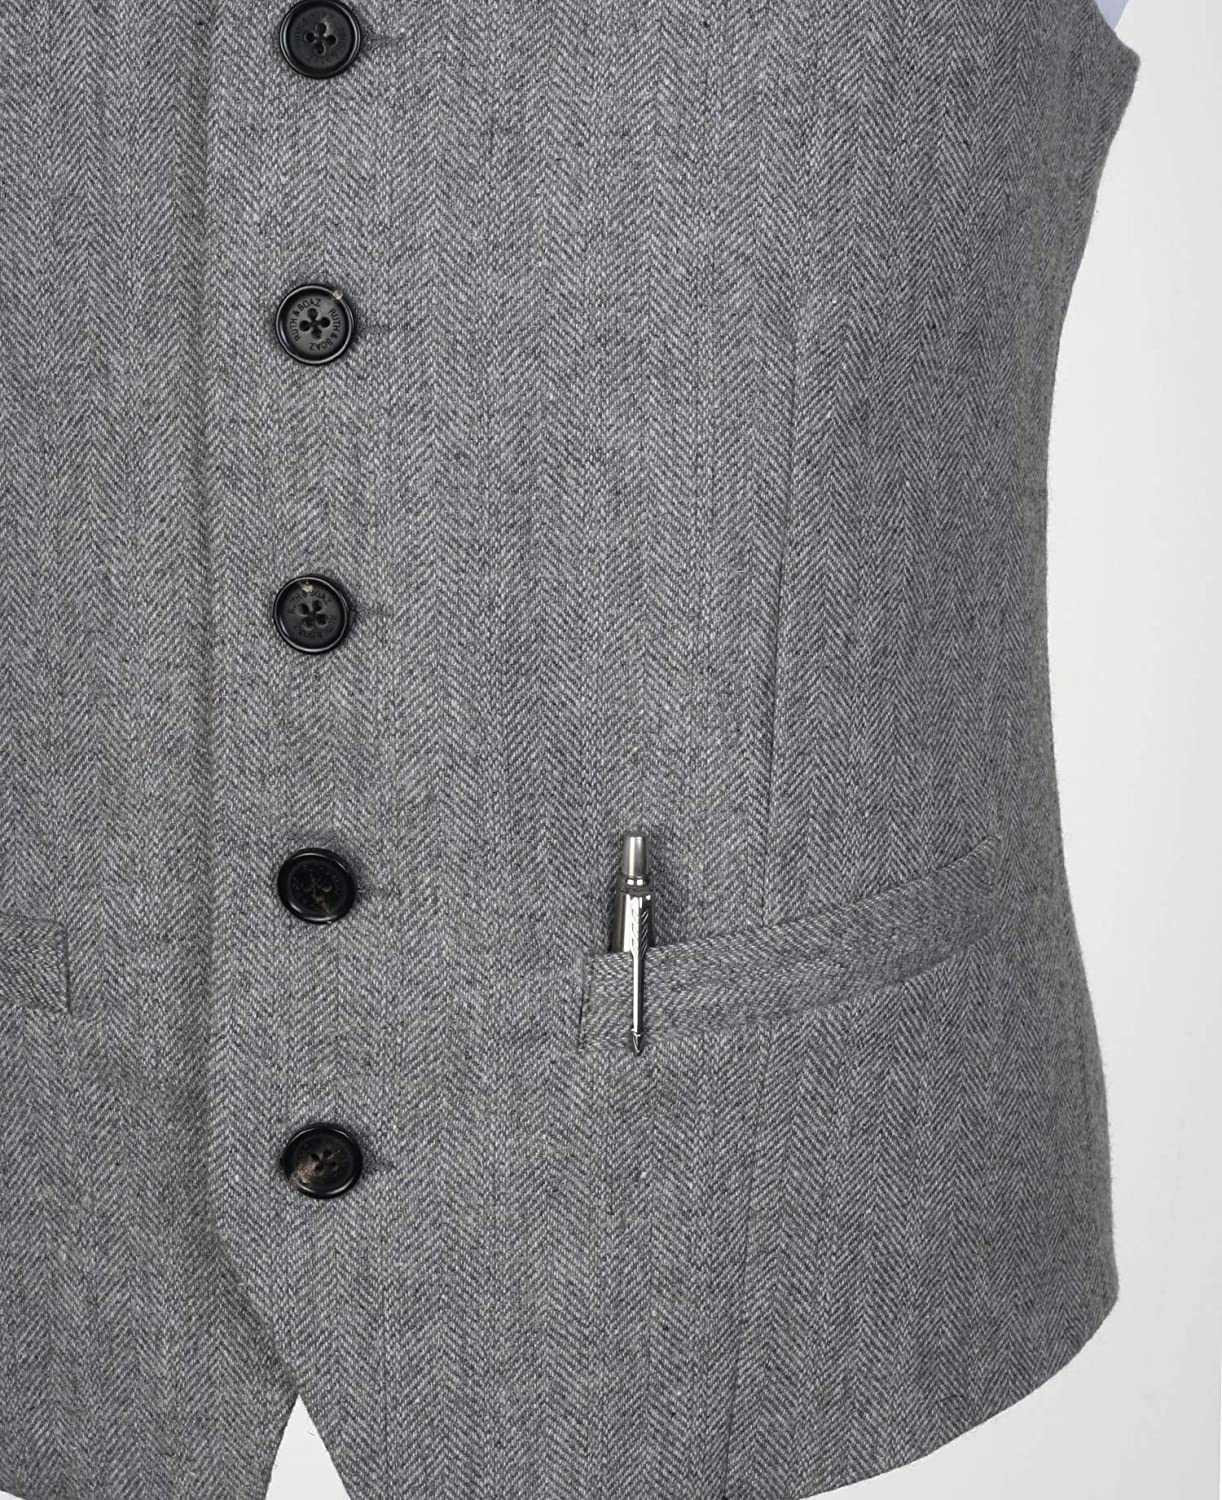 Ruth/&Boaz 2Pockets 5Buttons Wool Tweed Business Suit Vest